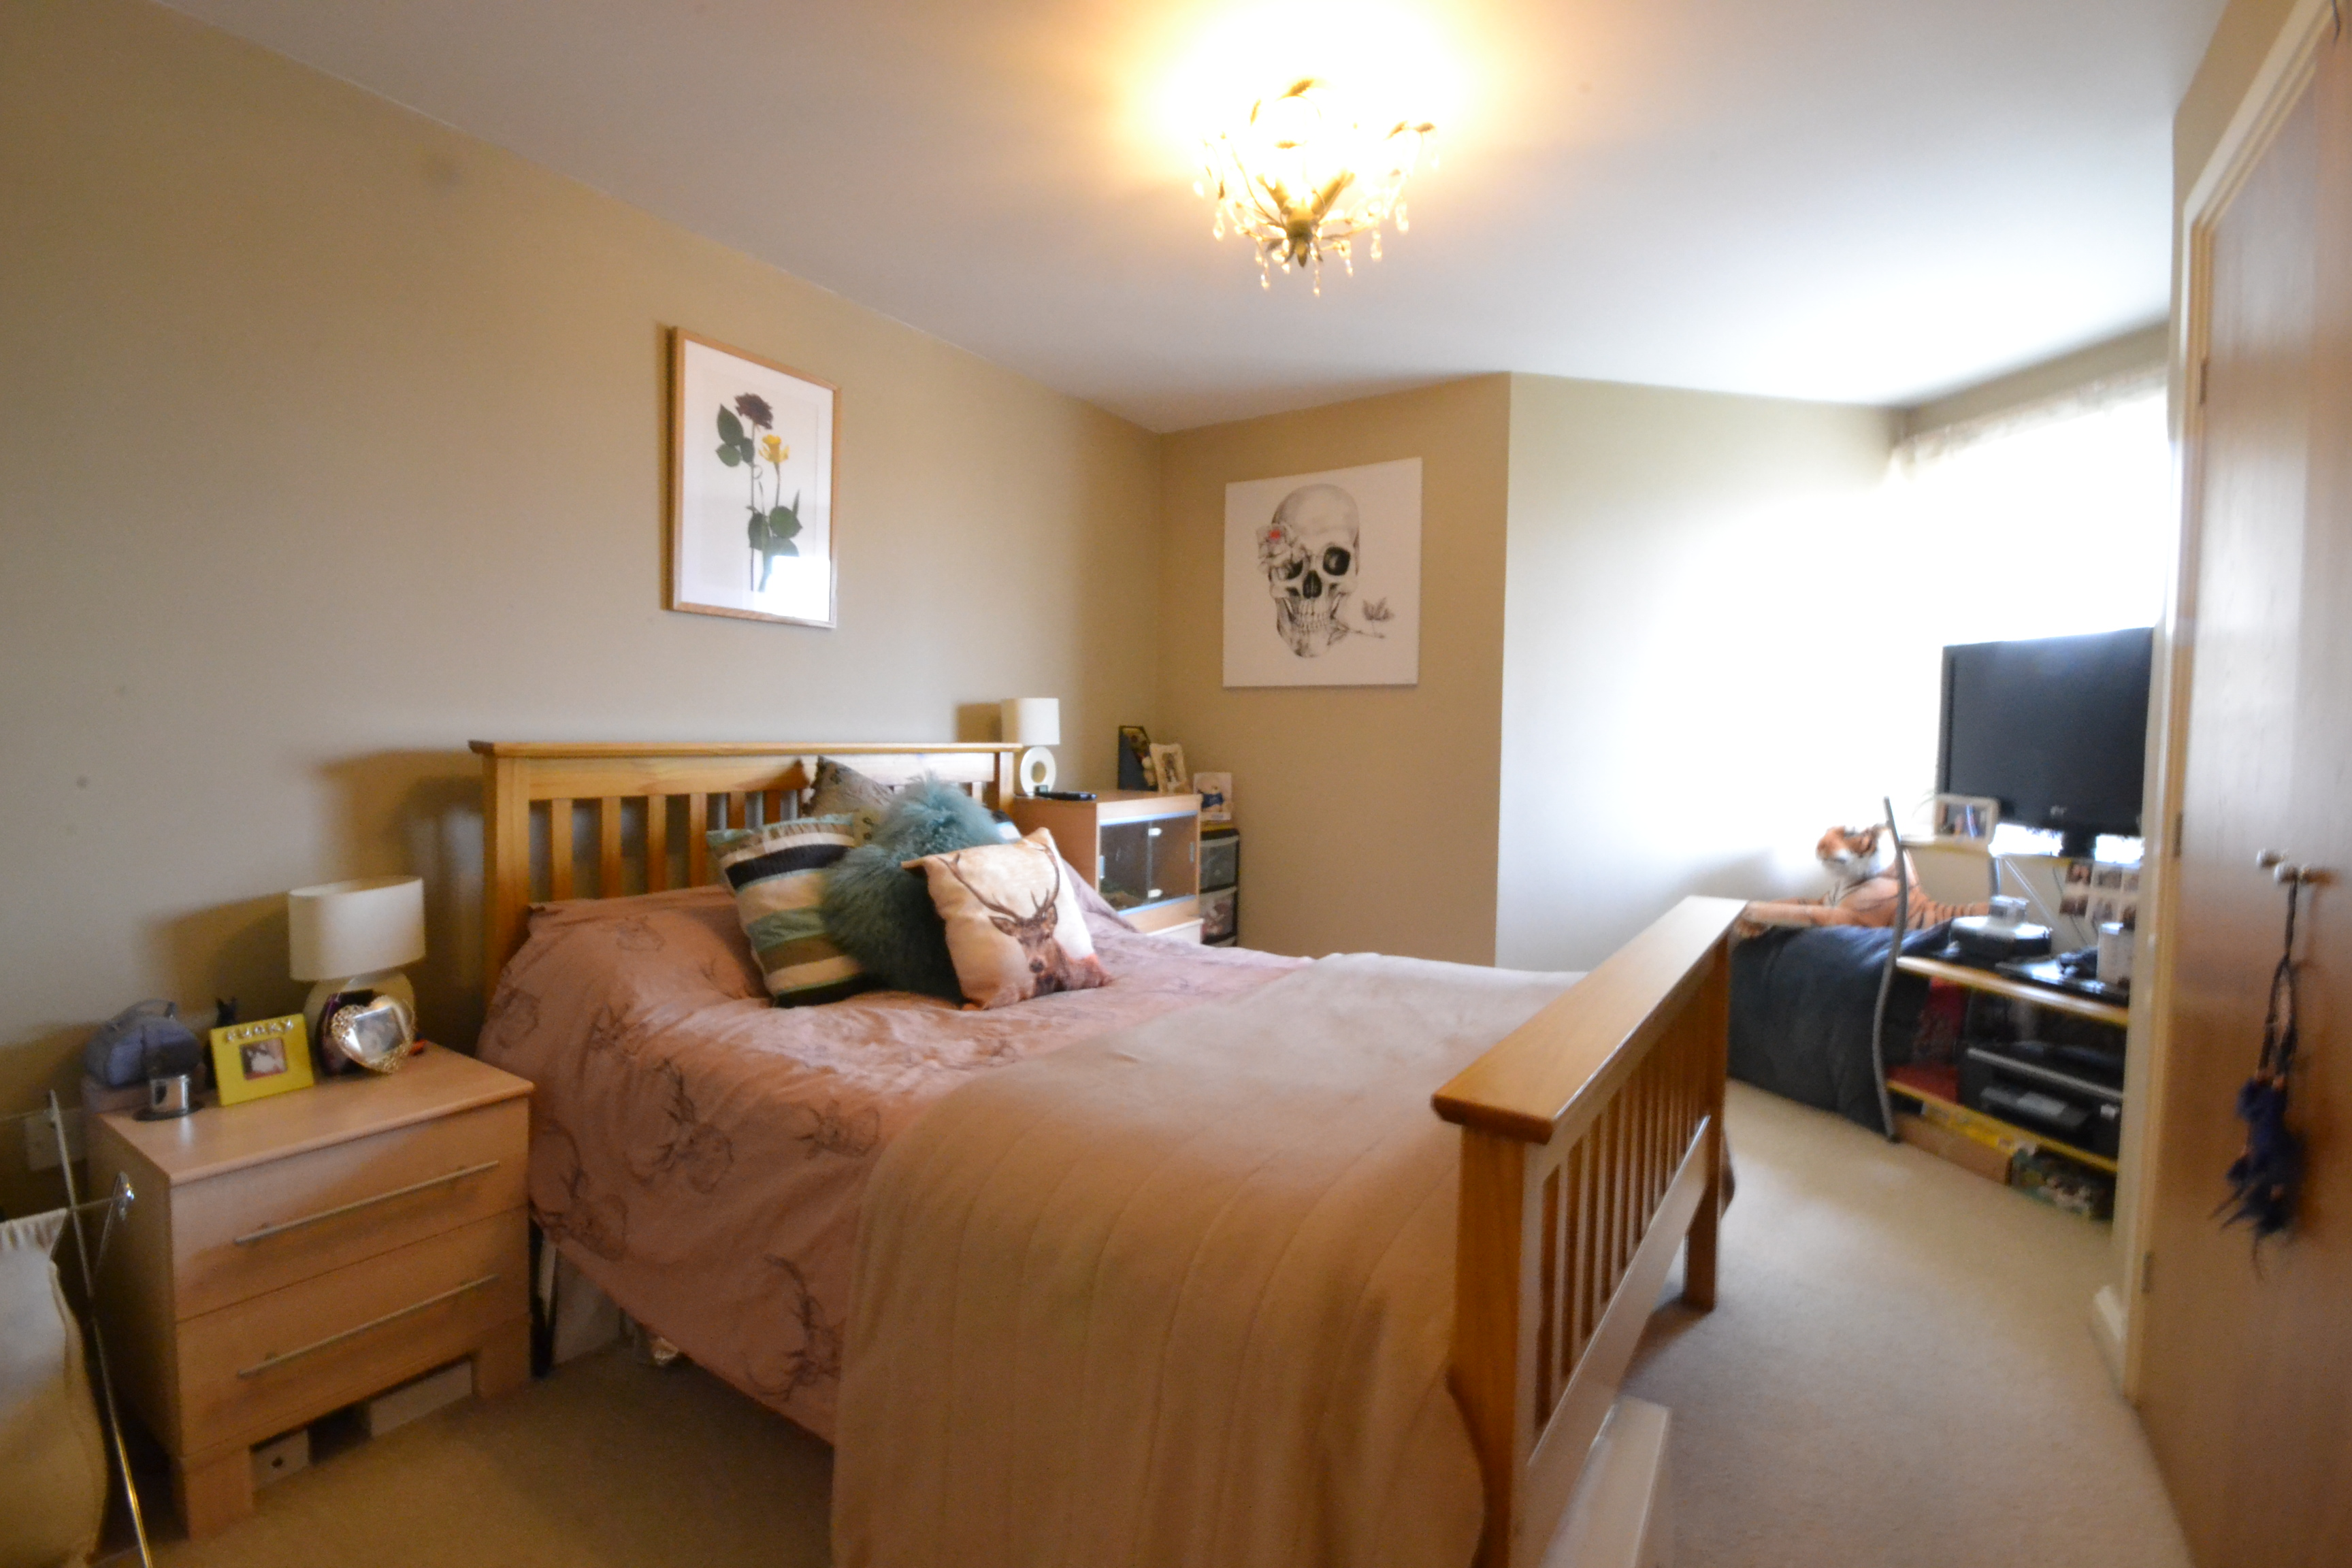 Marseille Bedroom Furniture 1 Bedroom Property For Sale In Marseille House Hansen Court Heol